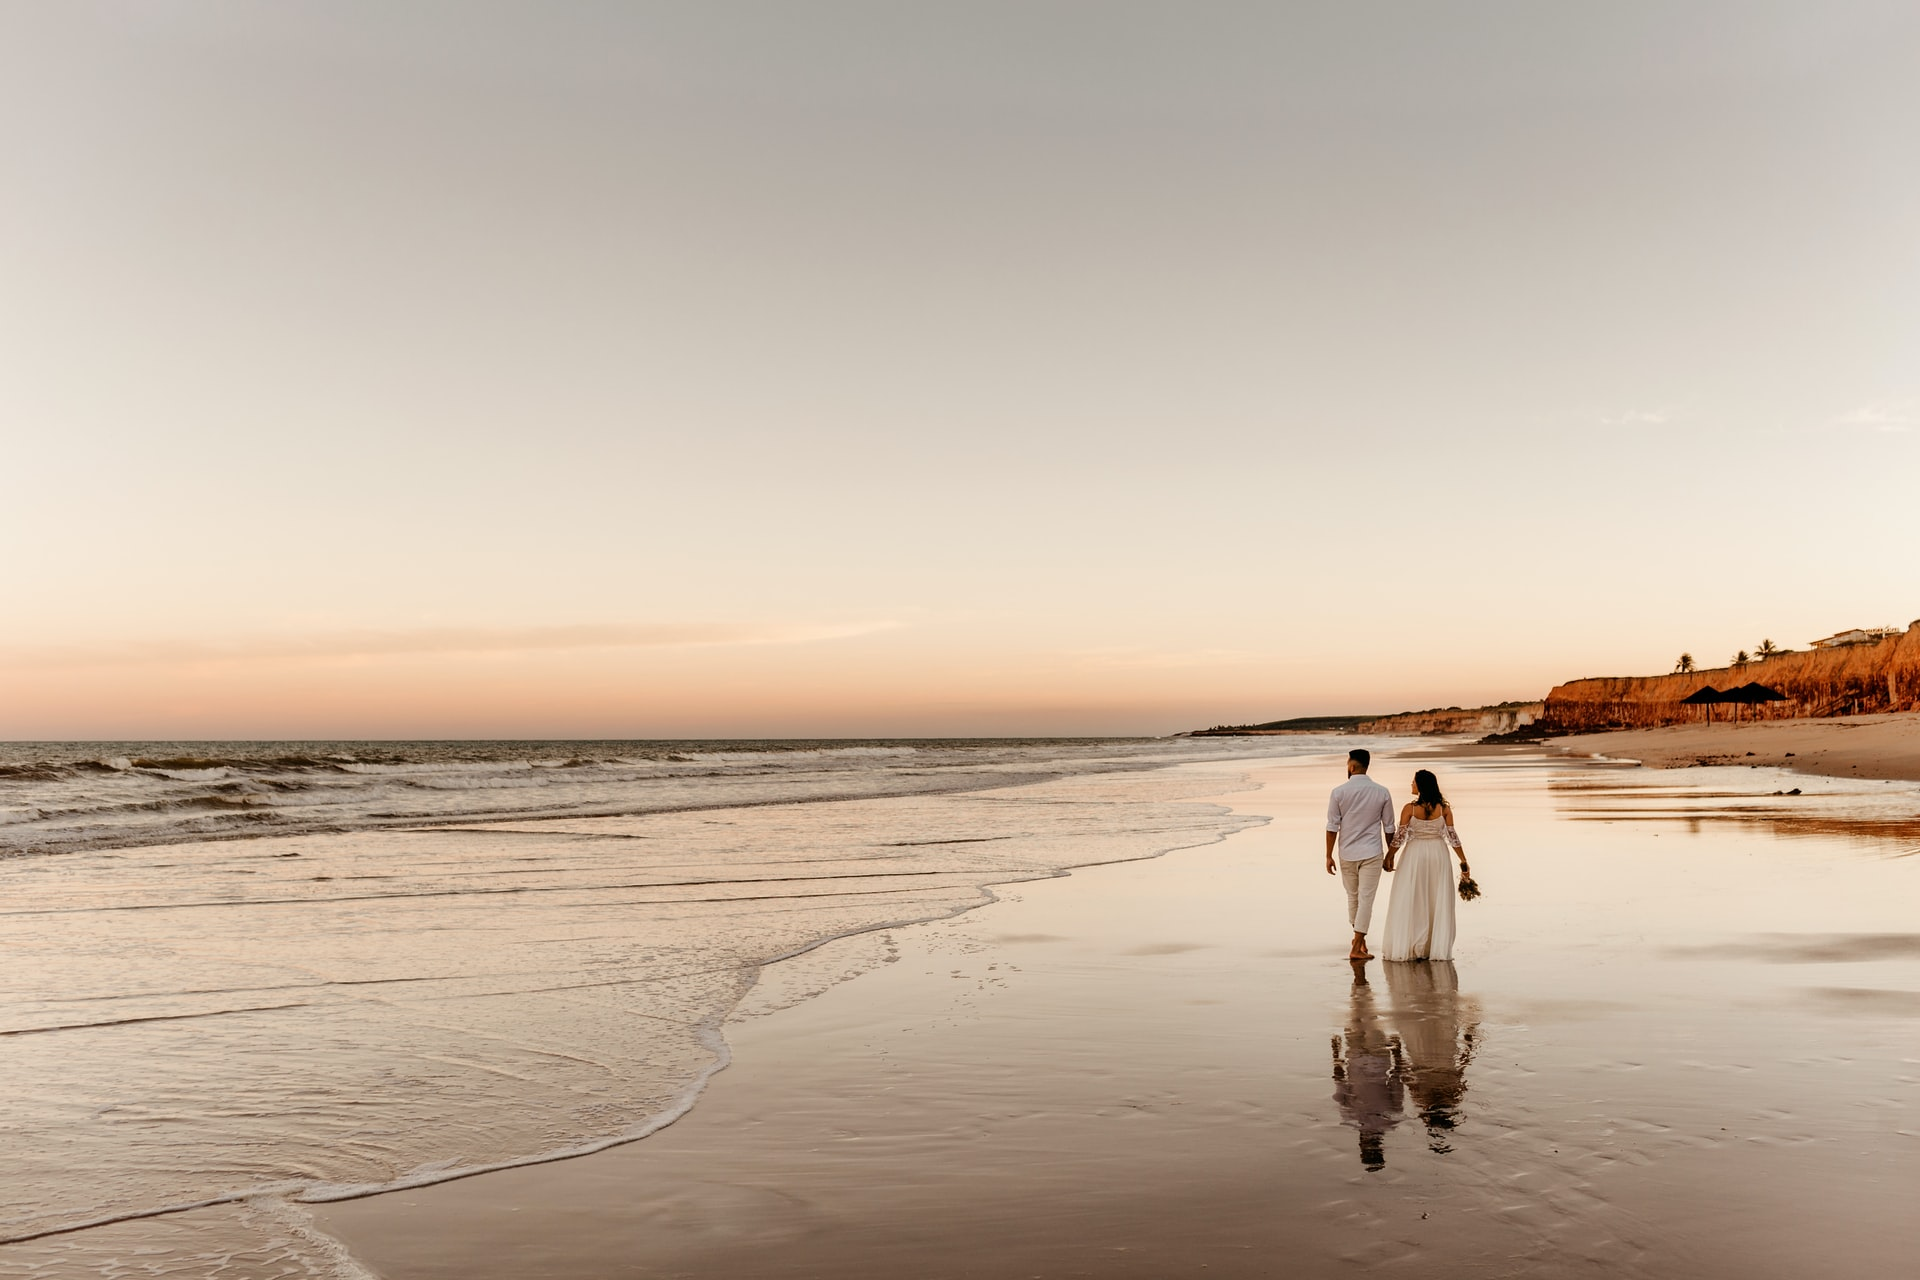 Two people walking on a beach